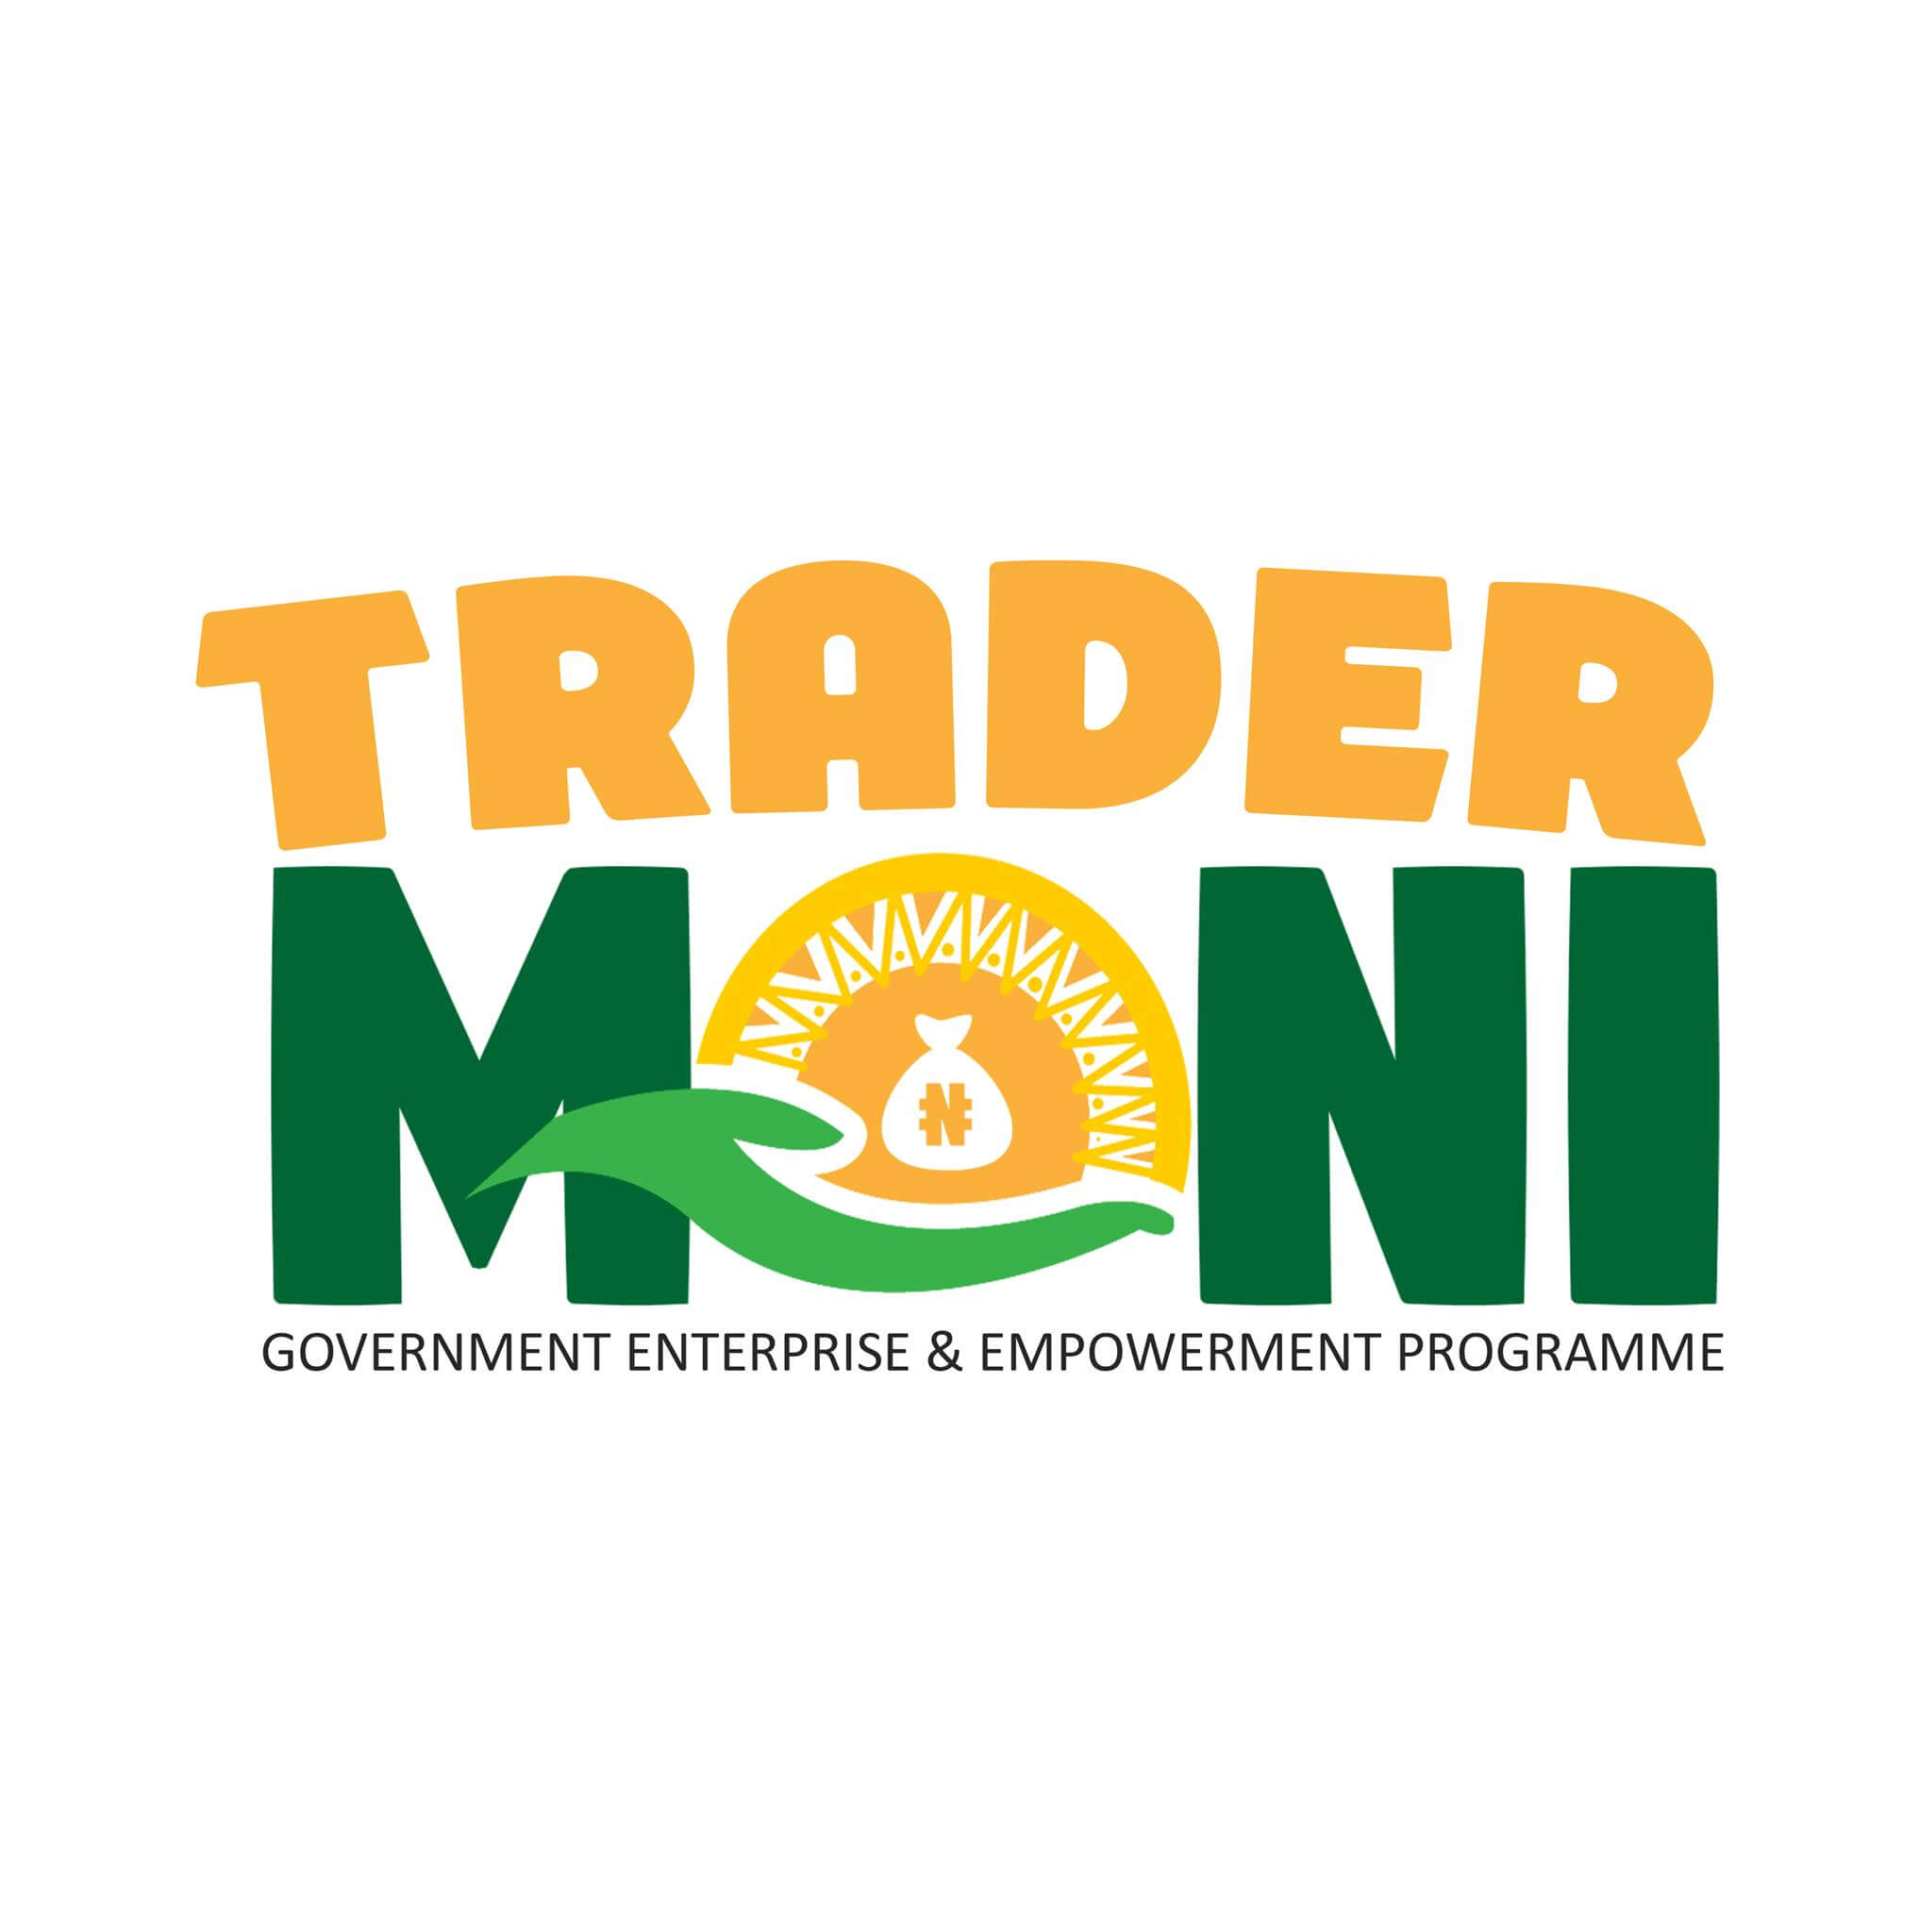 Africana Entrepreneur - Unsung perspectives of TraderMoni